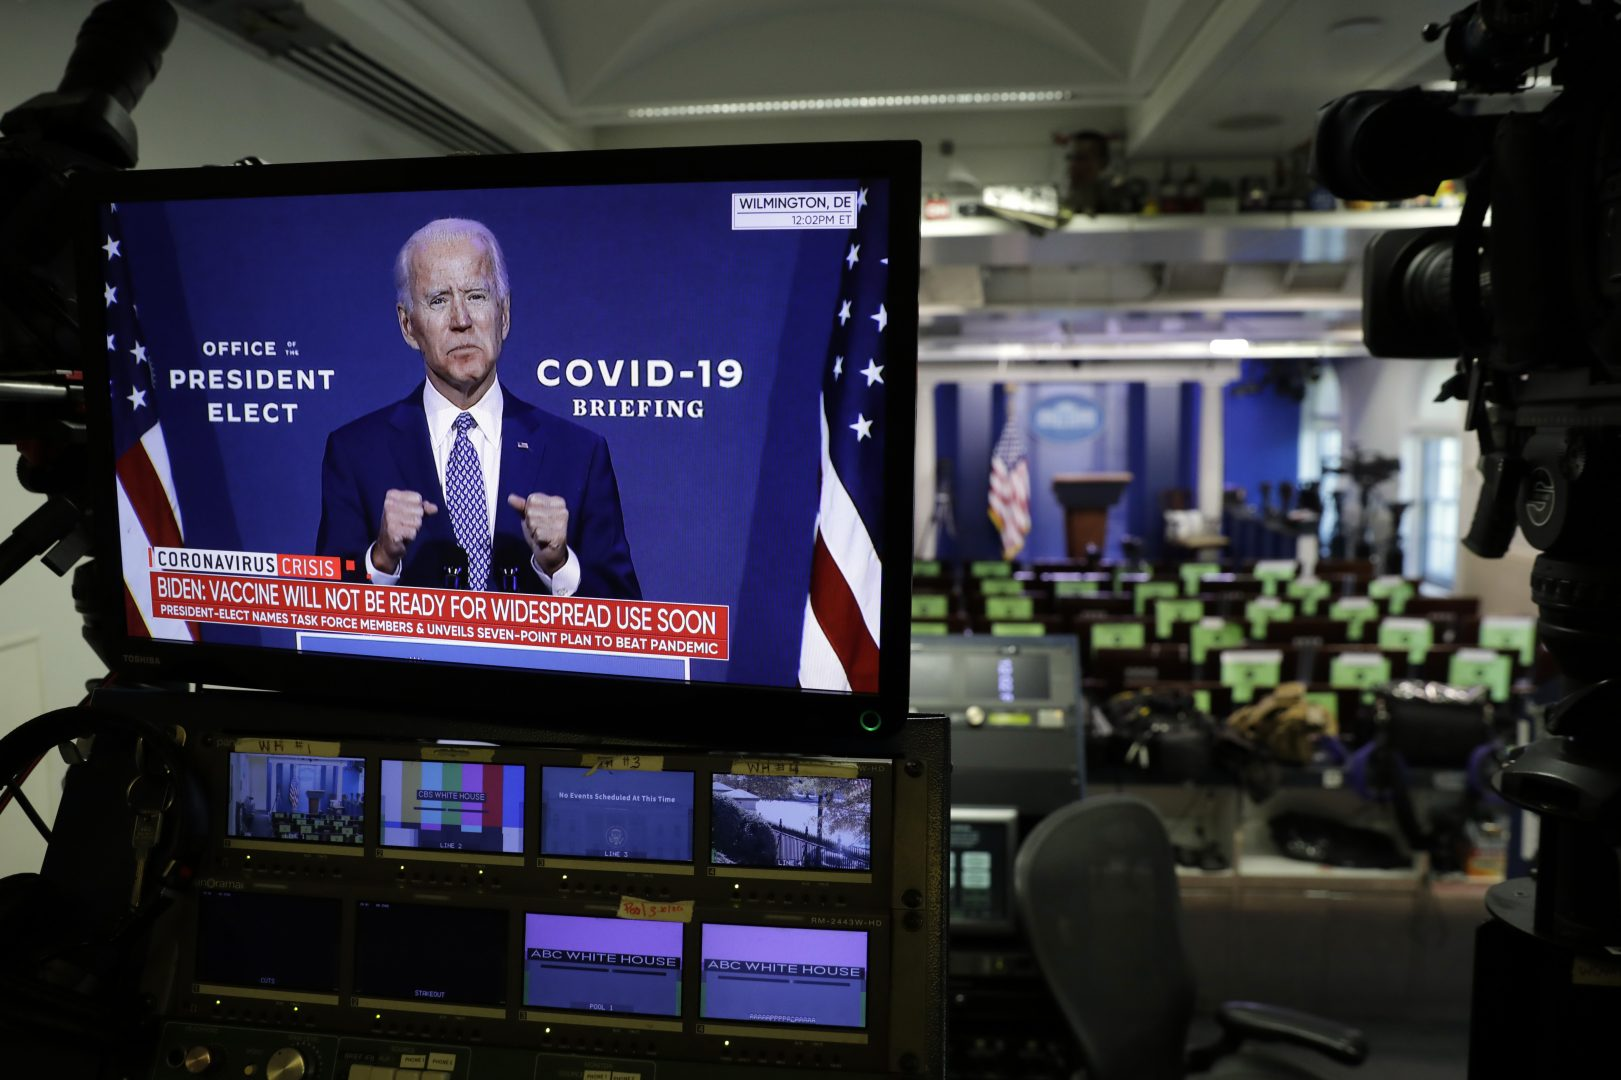 Democratic President-elect Joe Biden is seen during his statement on television monitors in the briefing room at the White House in Washington on November 9, 2020.